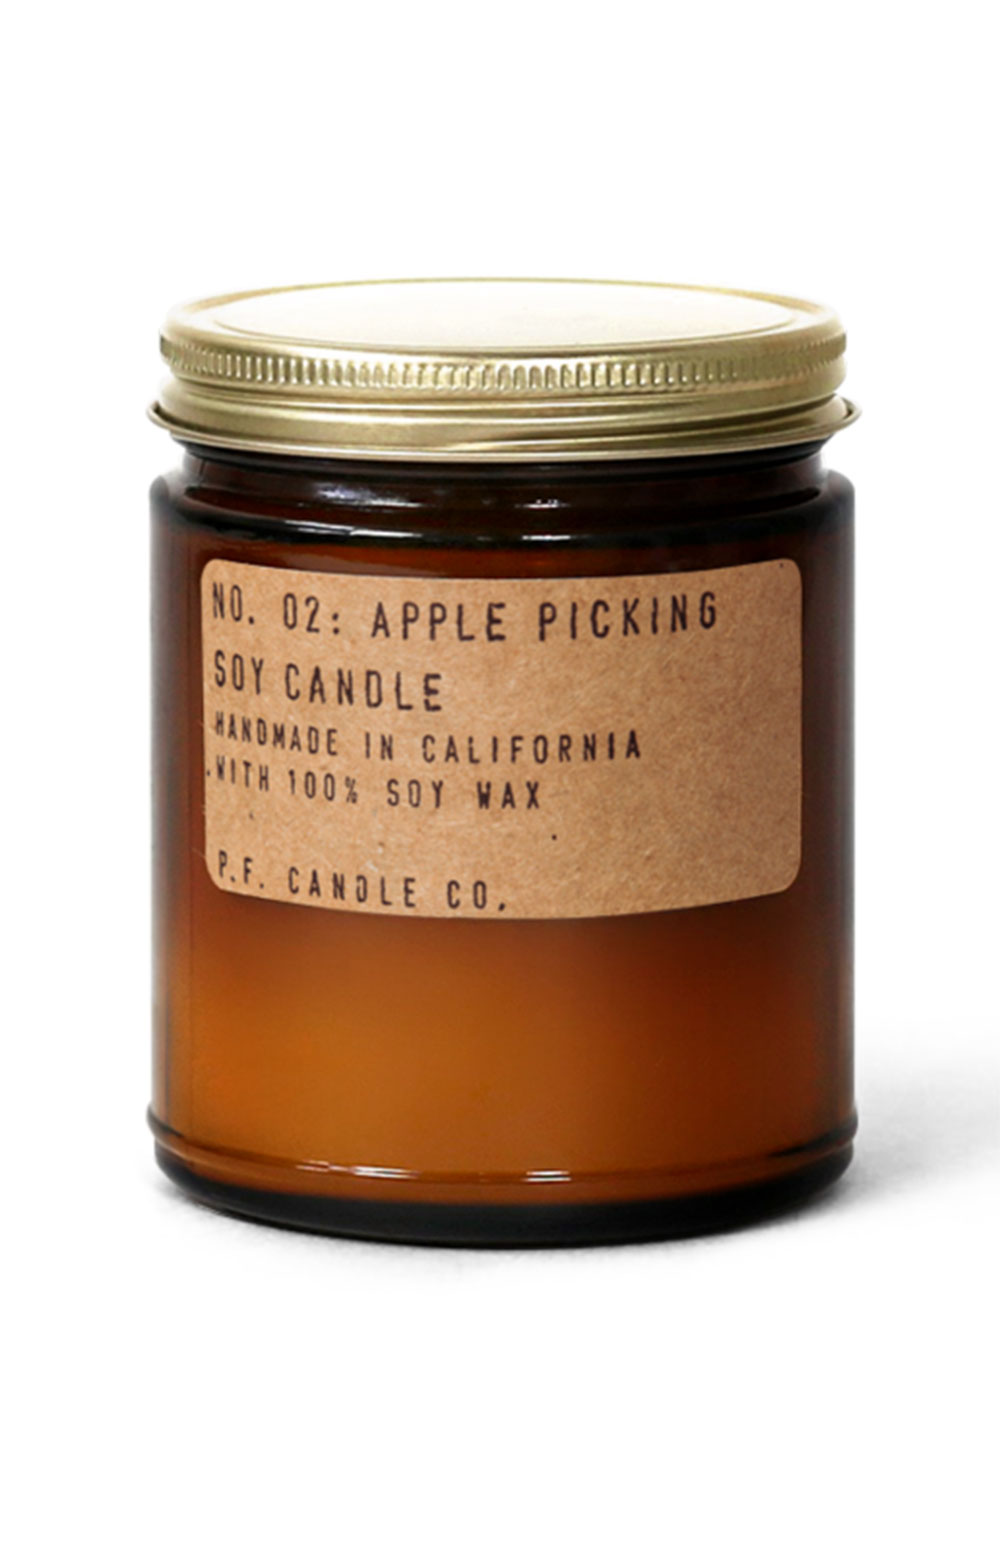 Apple Picking Soy Candle - 7.2 Oz